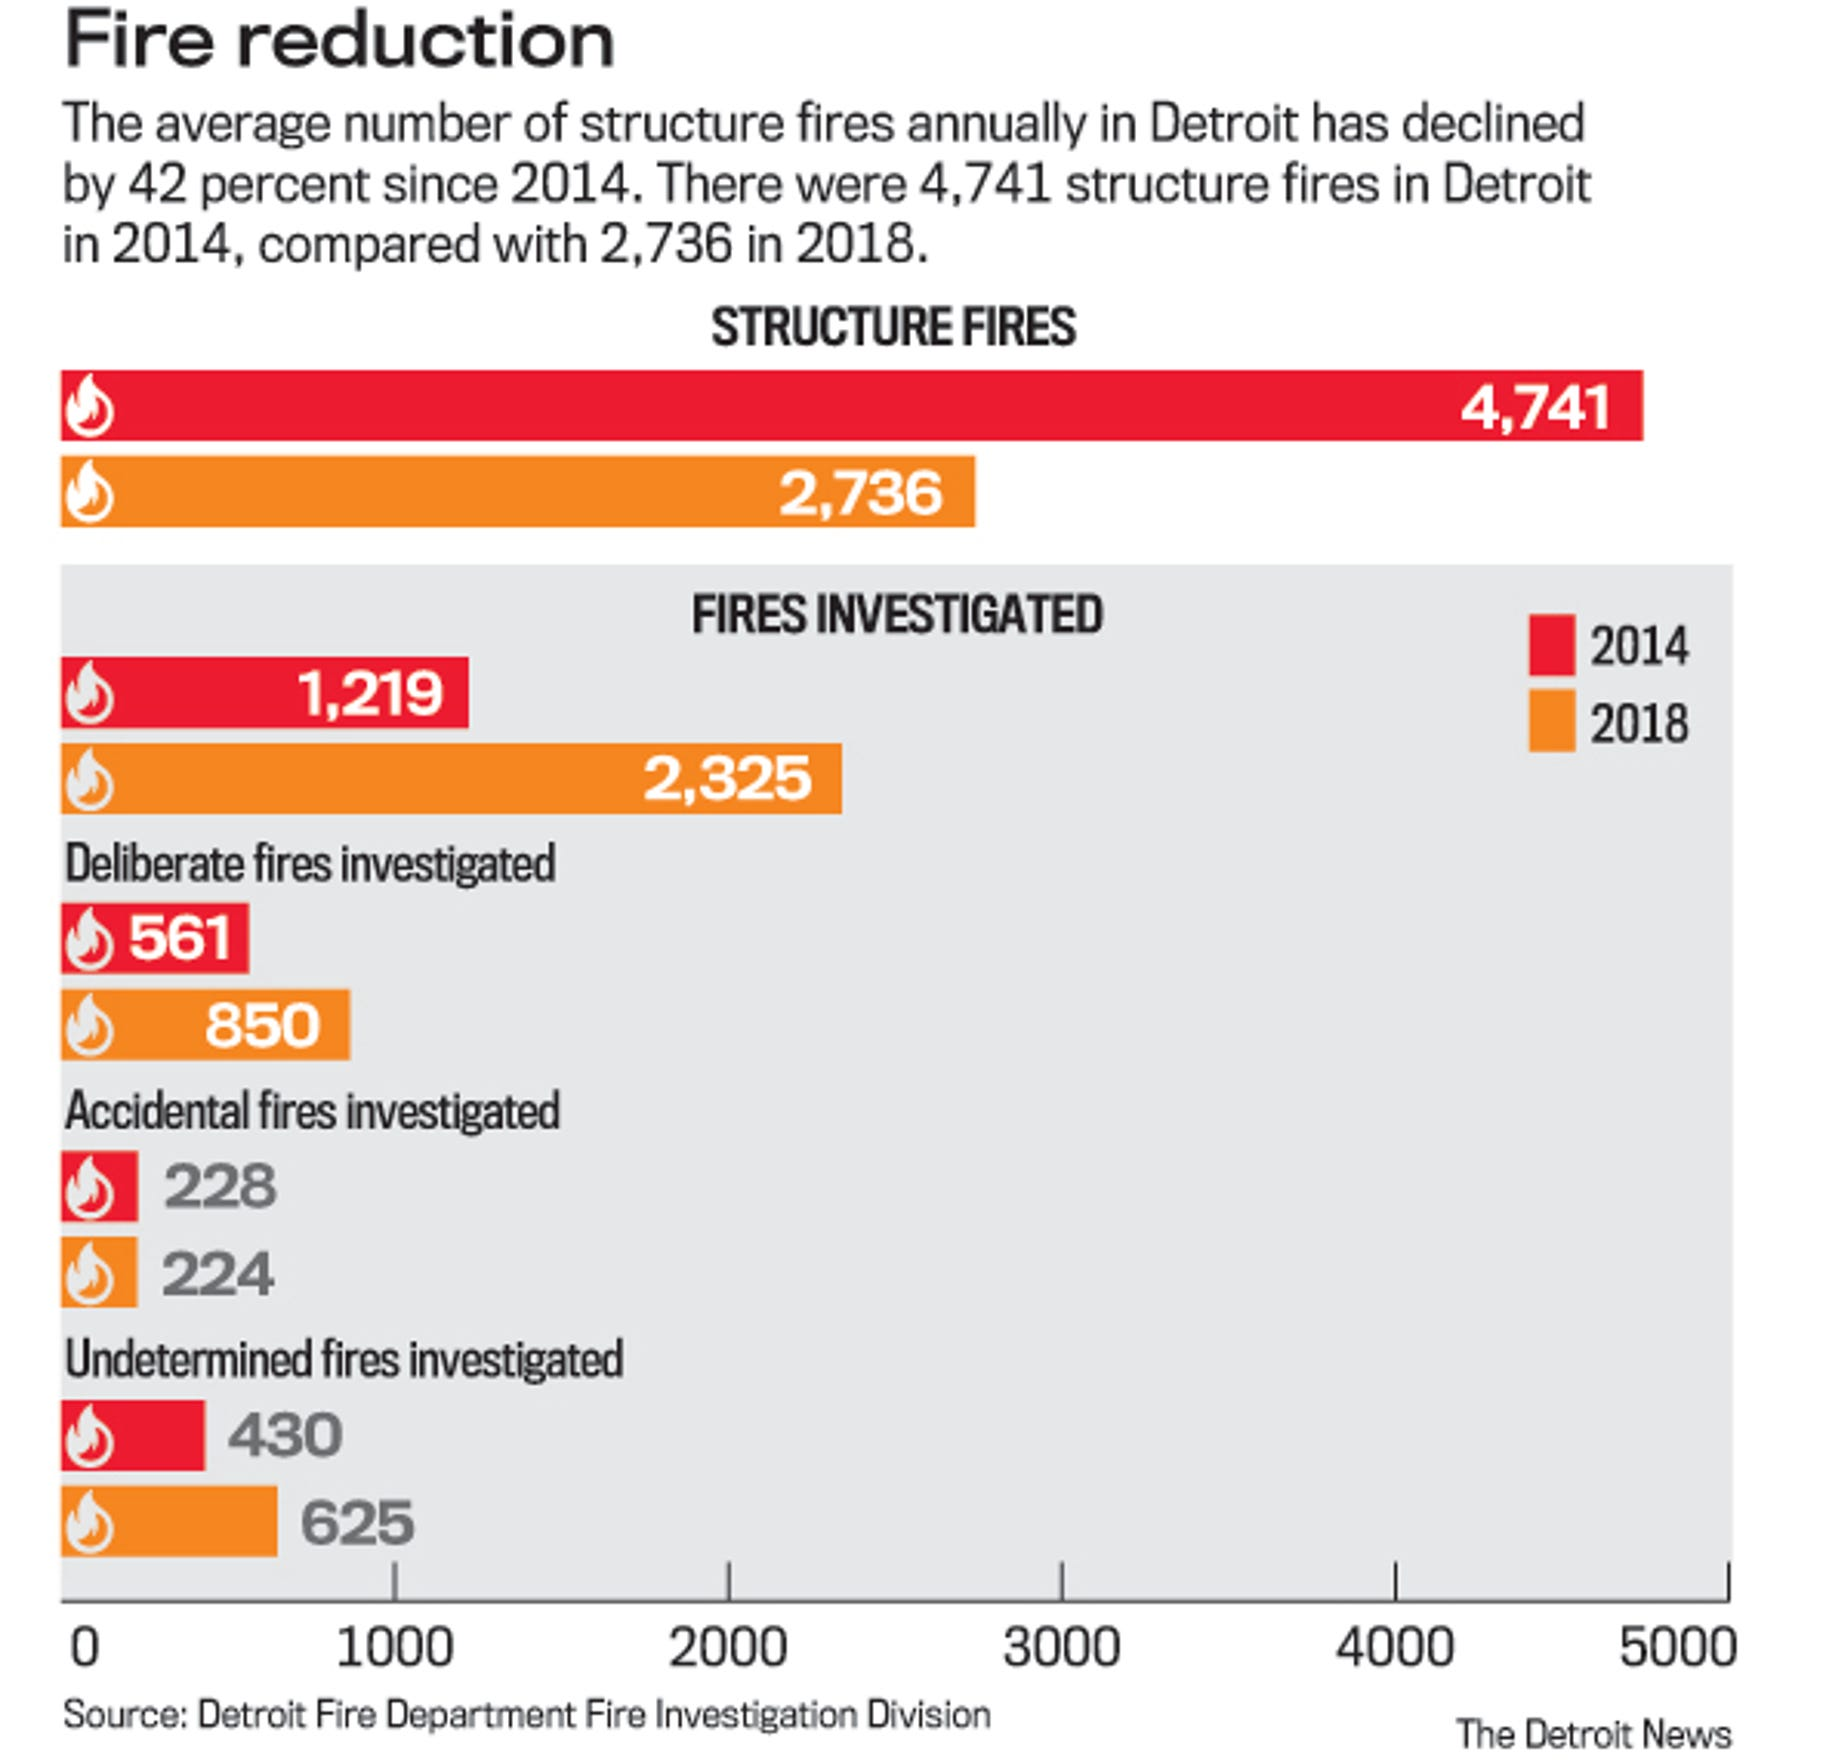 Detroit Fire Department data